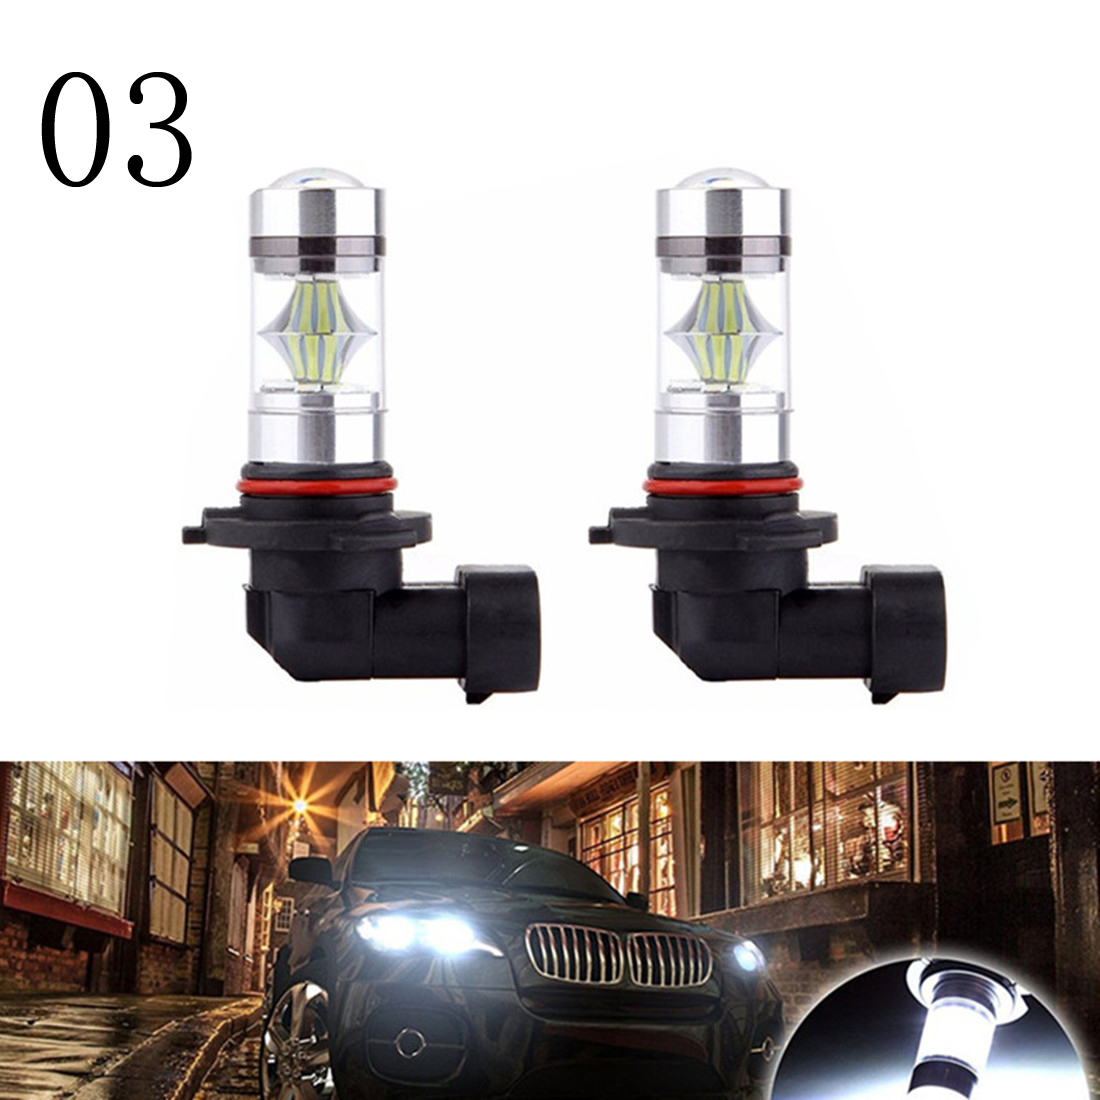 Set of 2, White BMT Canbus H3 LED Fog Lights Extremely Bright Car Bulbs 55W PK22S Auto Fog Light Foglight DRL Light Signal Lamps